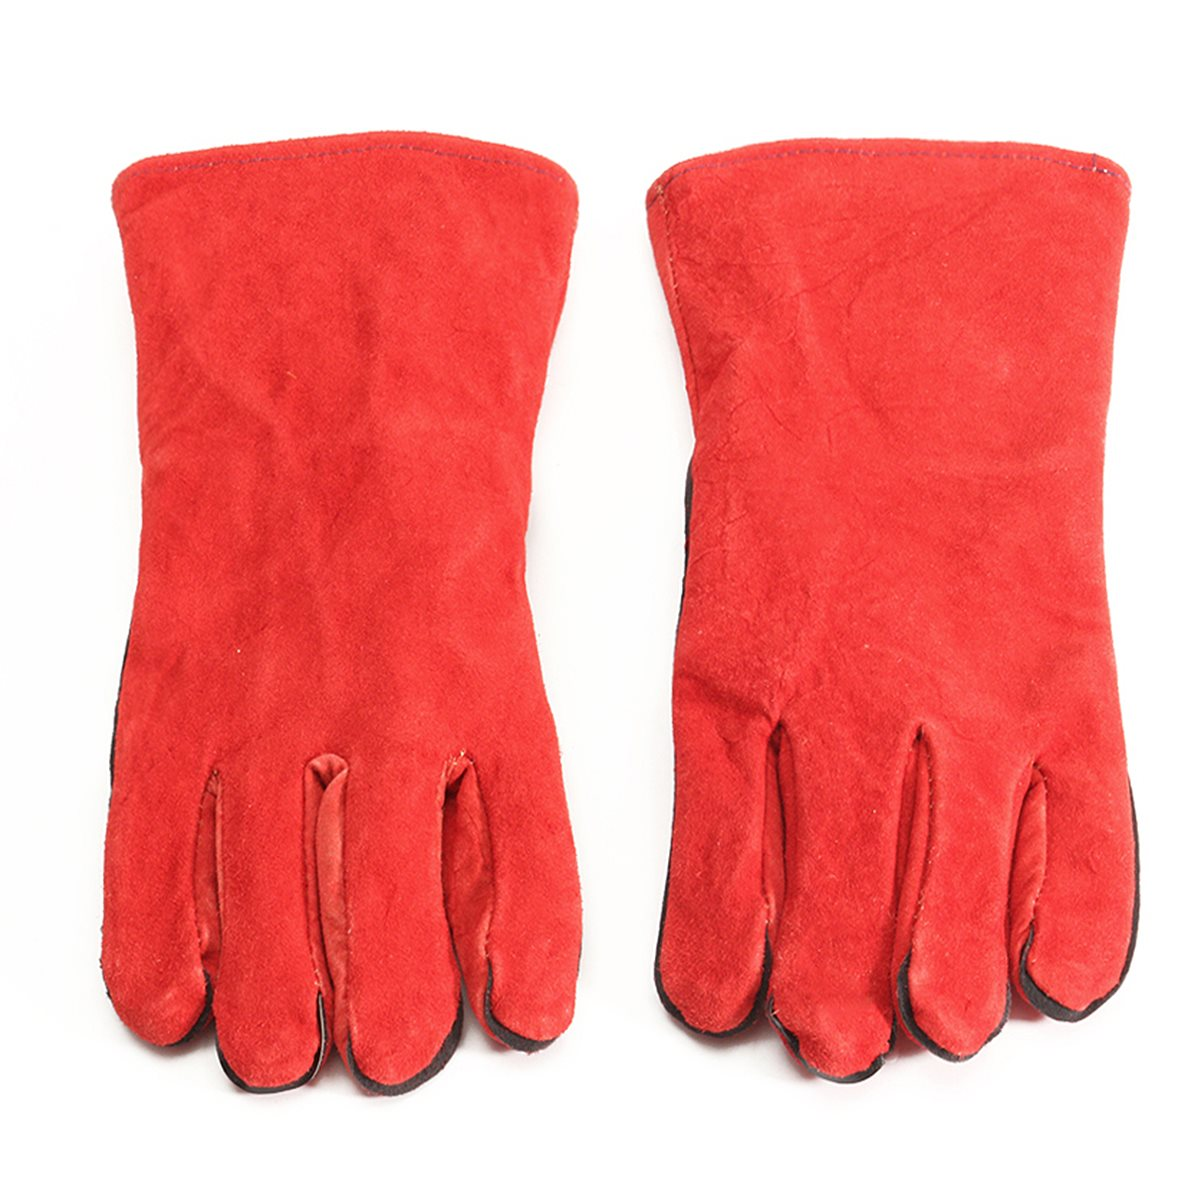 Gauntlet cuff leather work gloves - Xl Leather Welder Gauntlet Log Fire High Temperature Protection Long Glove Stove Safety Gloves China